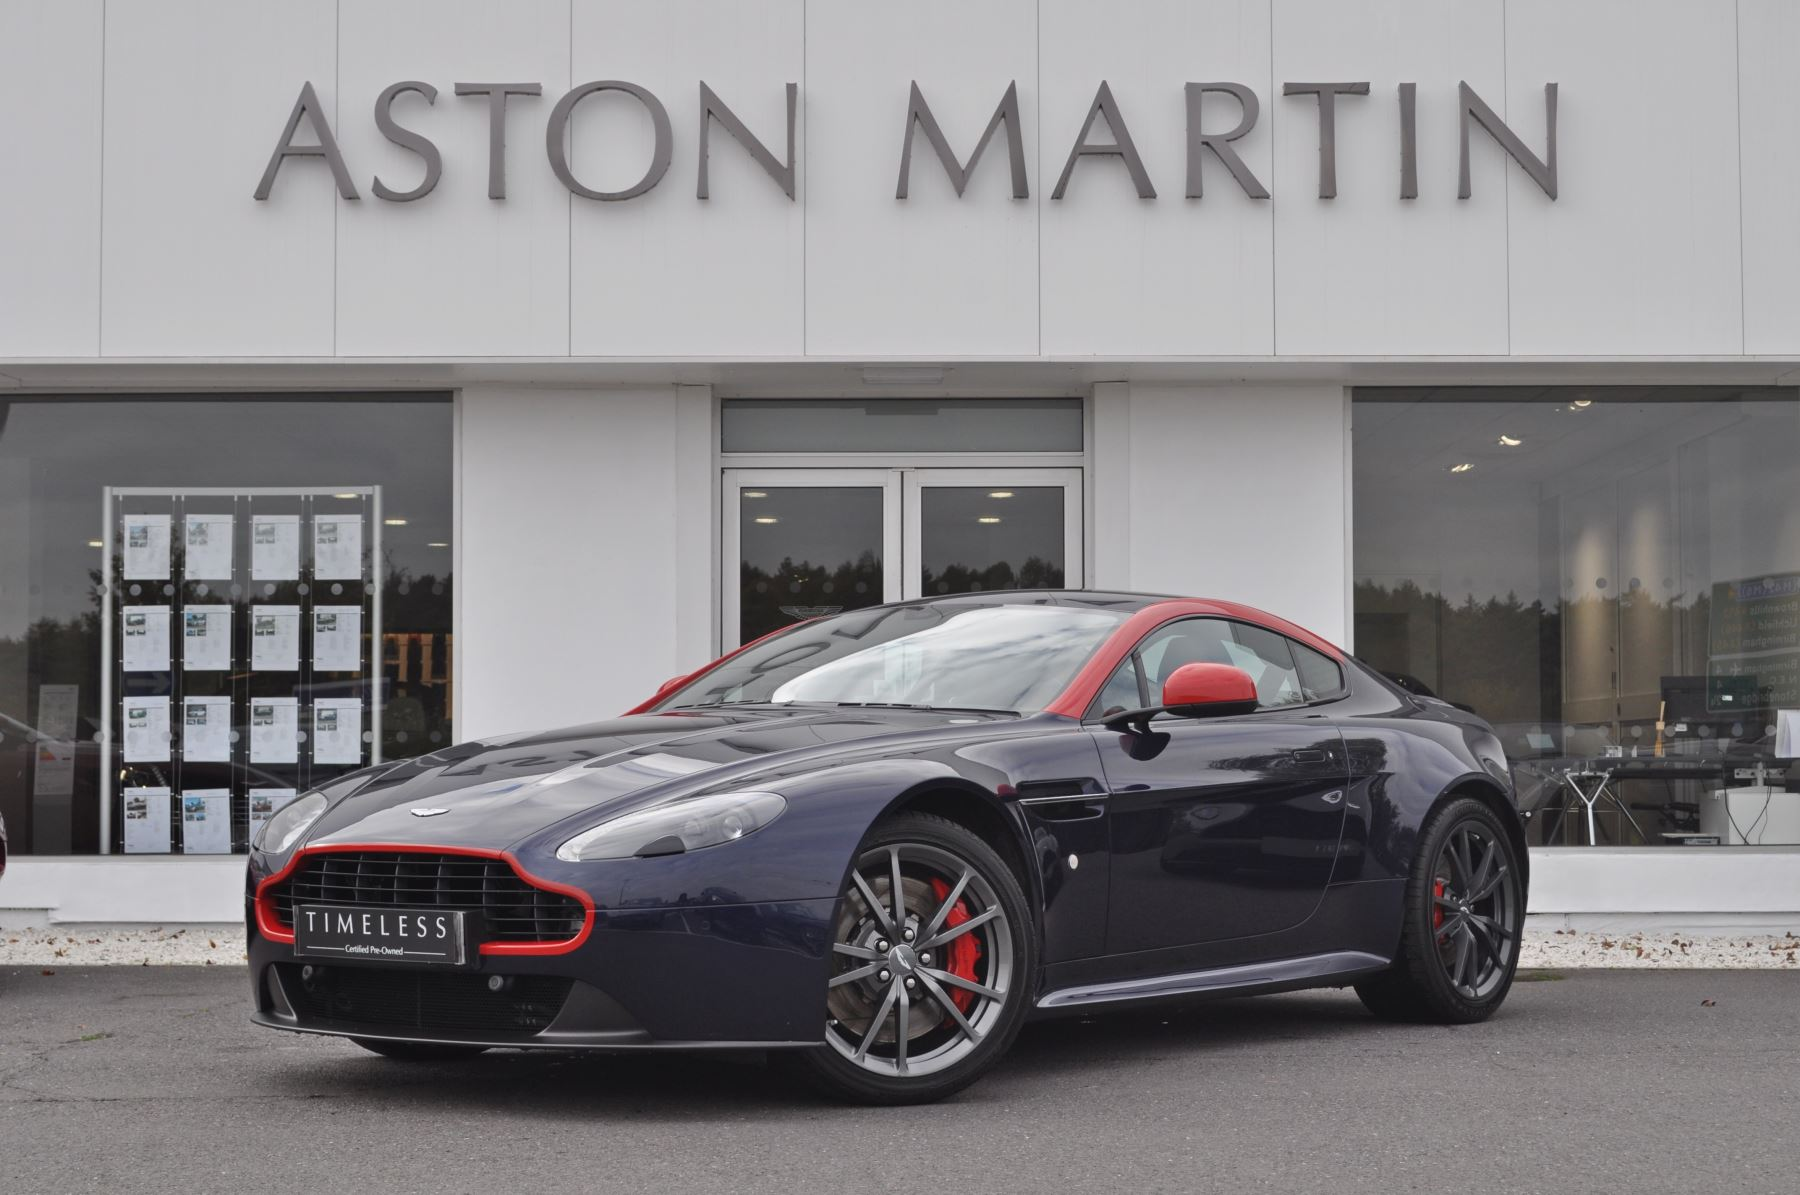 Aston Martin Vantage N430 V8 S Coupe  4.7 Sports Shift 2 door (2015)